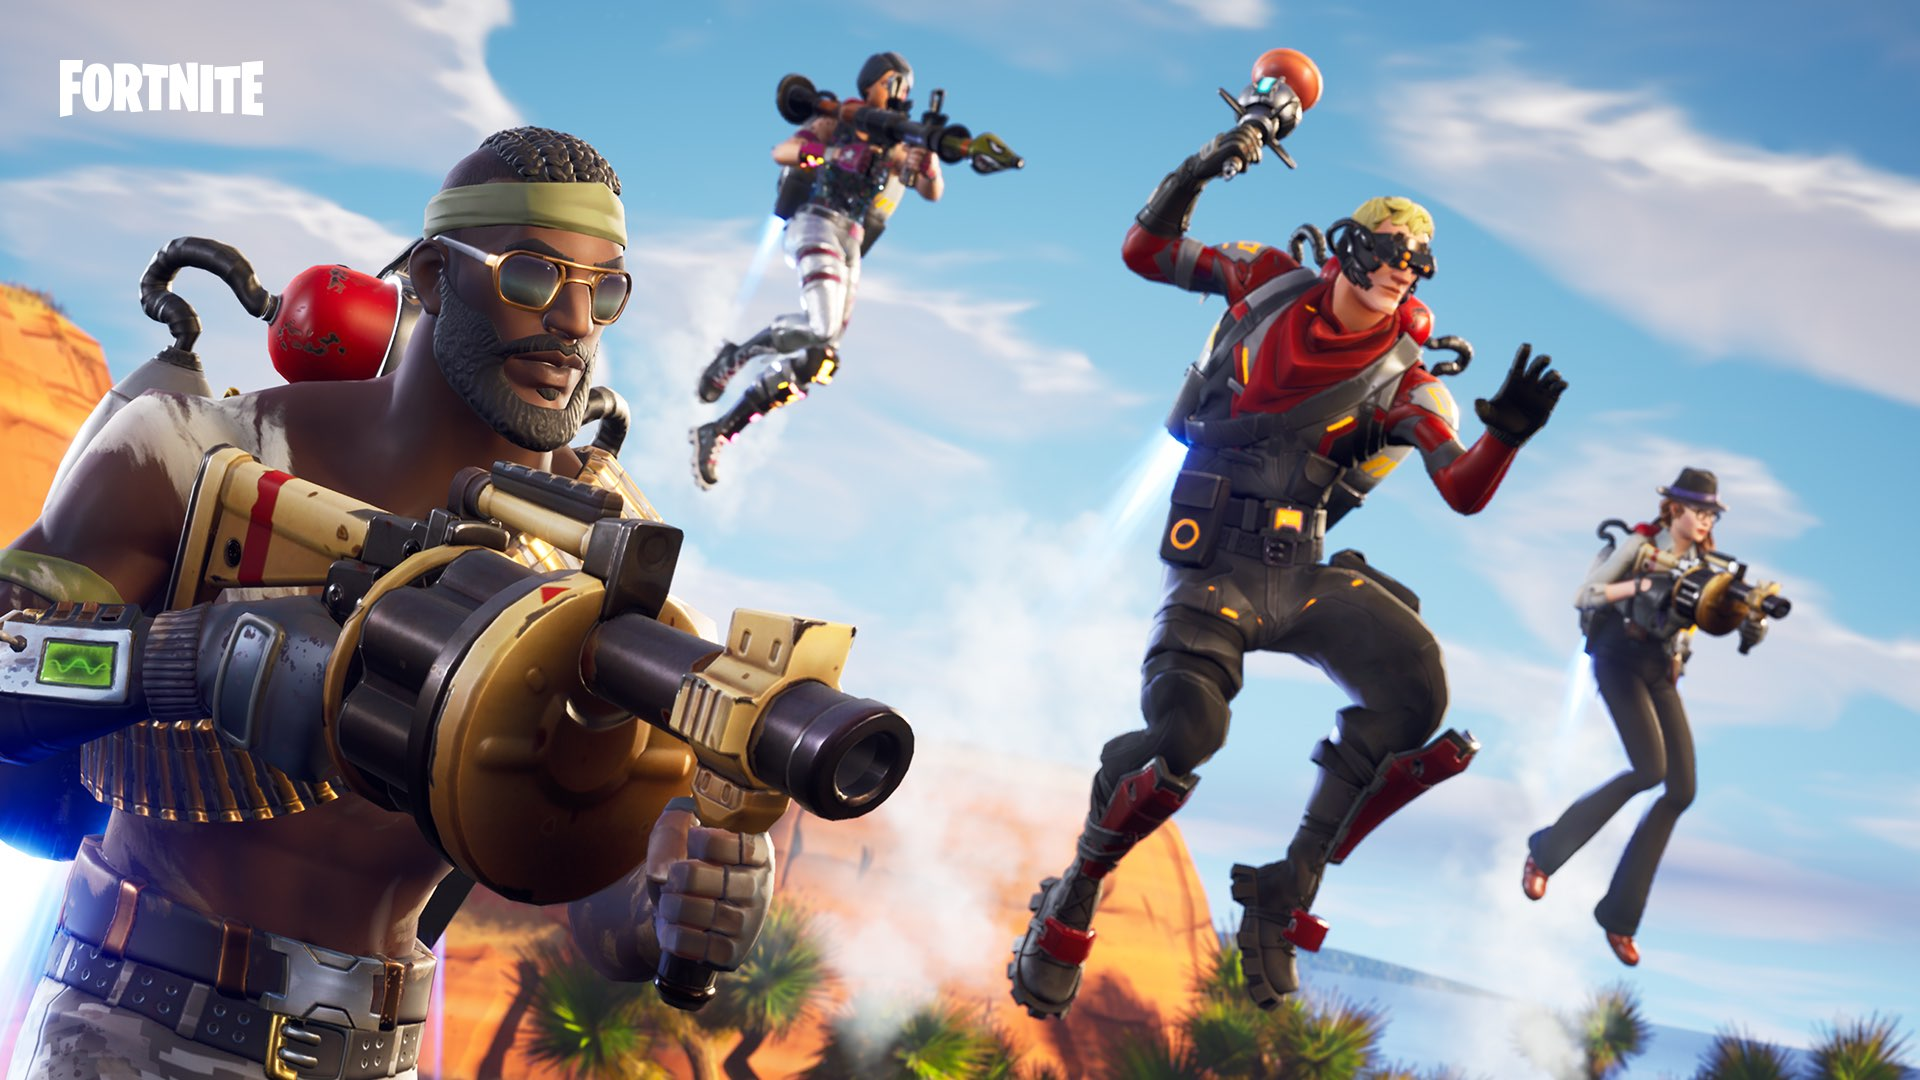 Popular Fortnite Battle Royale Mobile Game Could Launch On